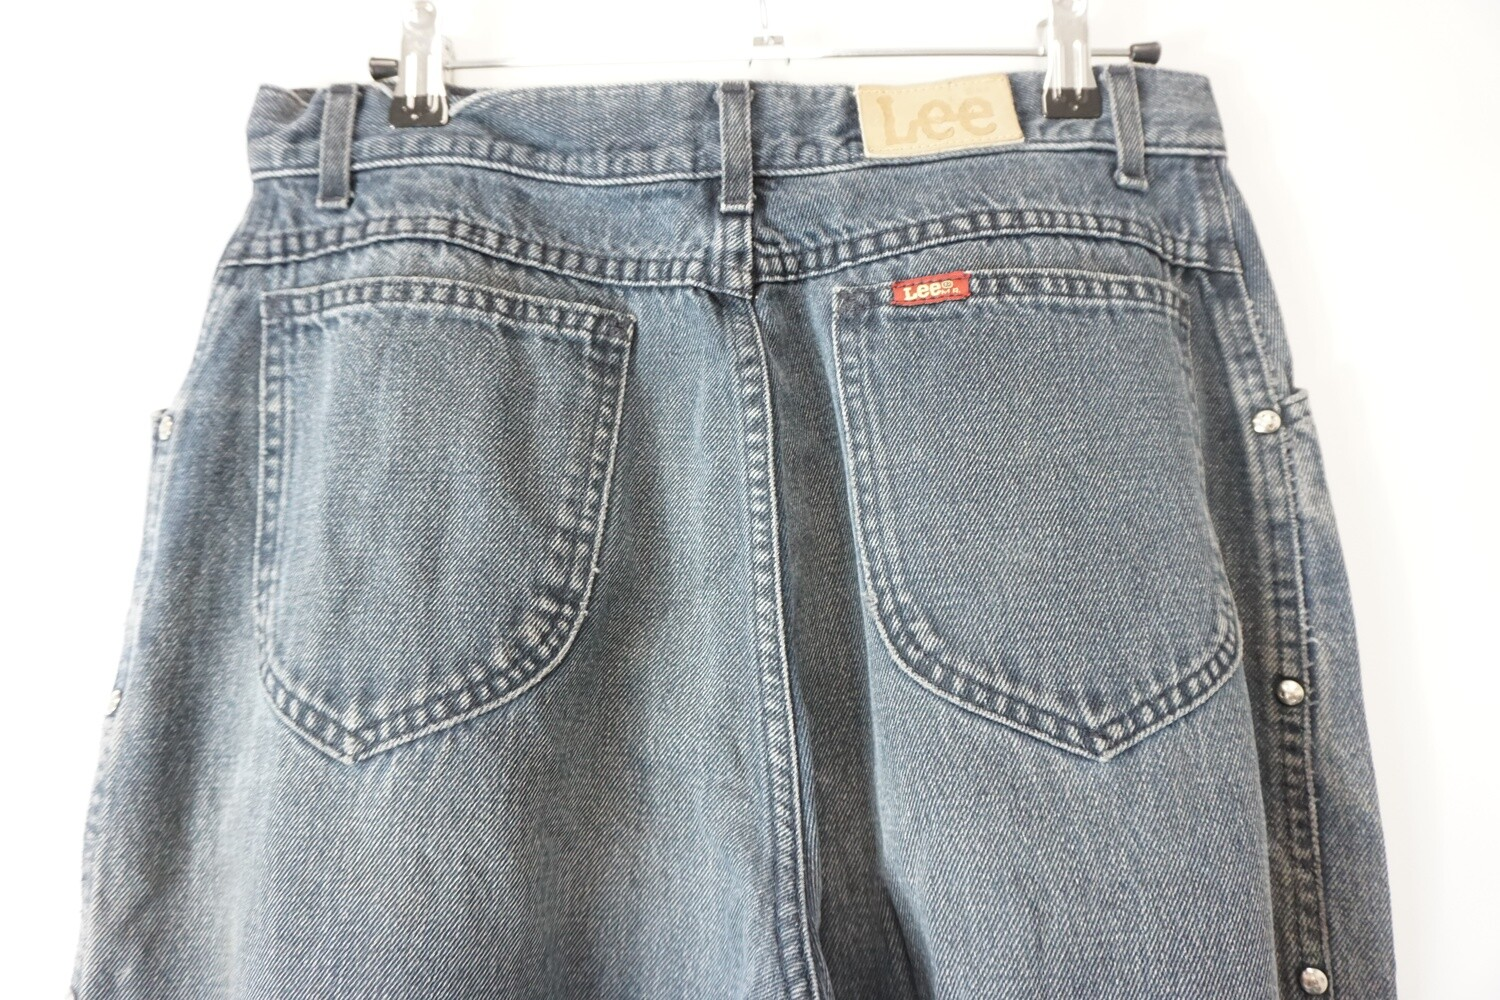 Lee Studded Jeans Size 13